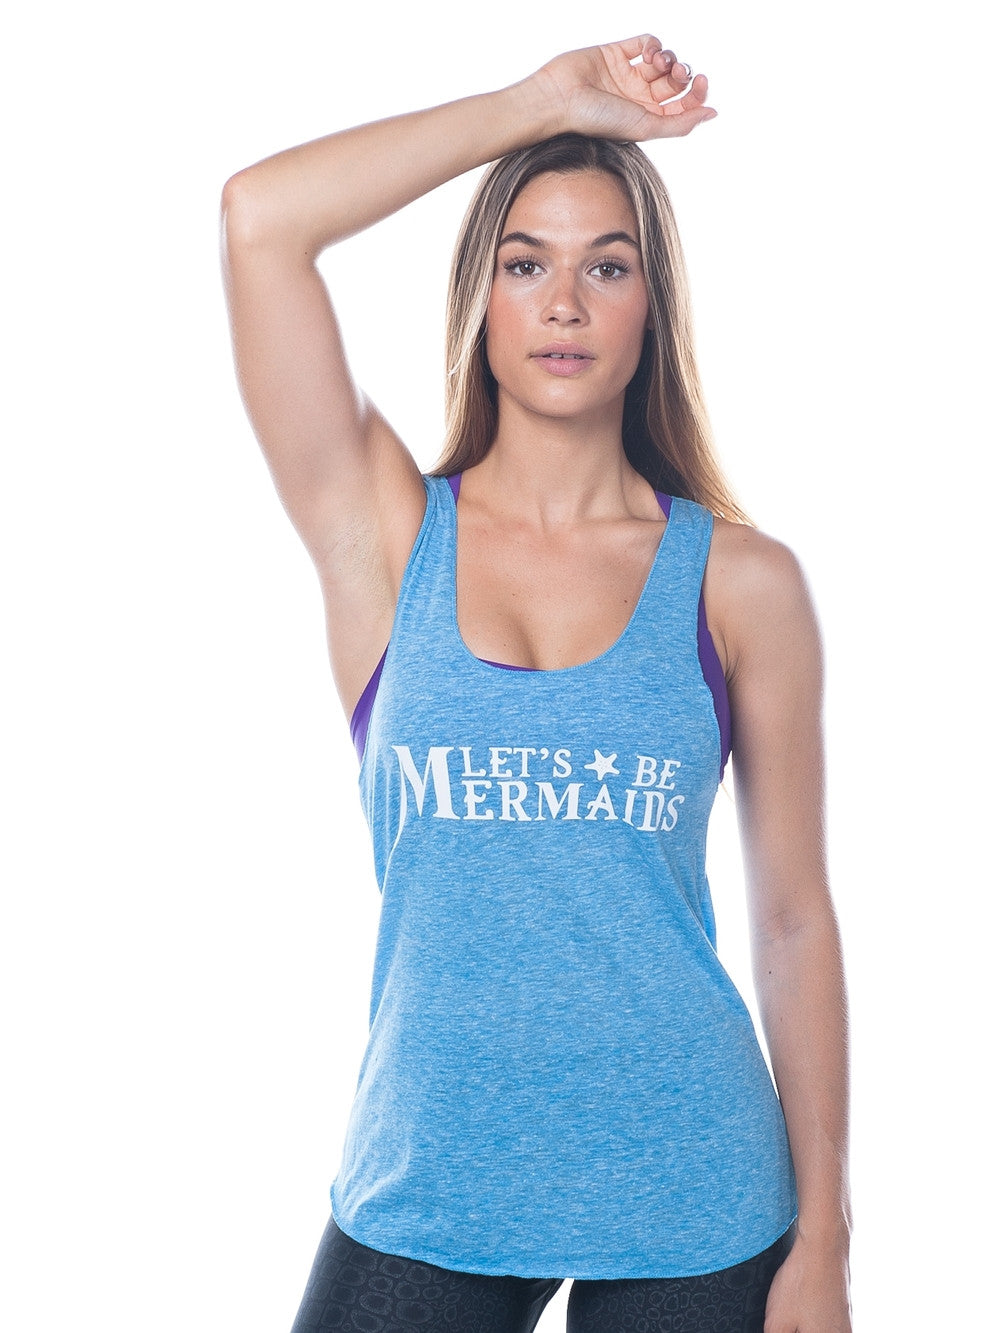 Mermaid workout tank top in blue  - Valleau Apparel